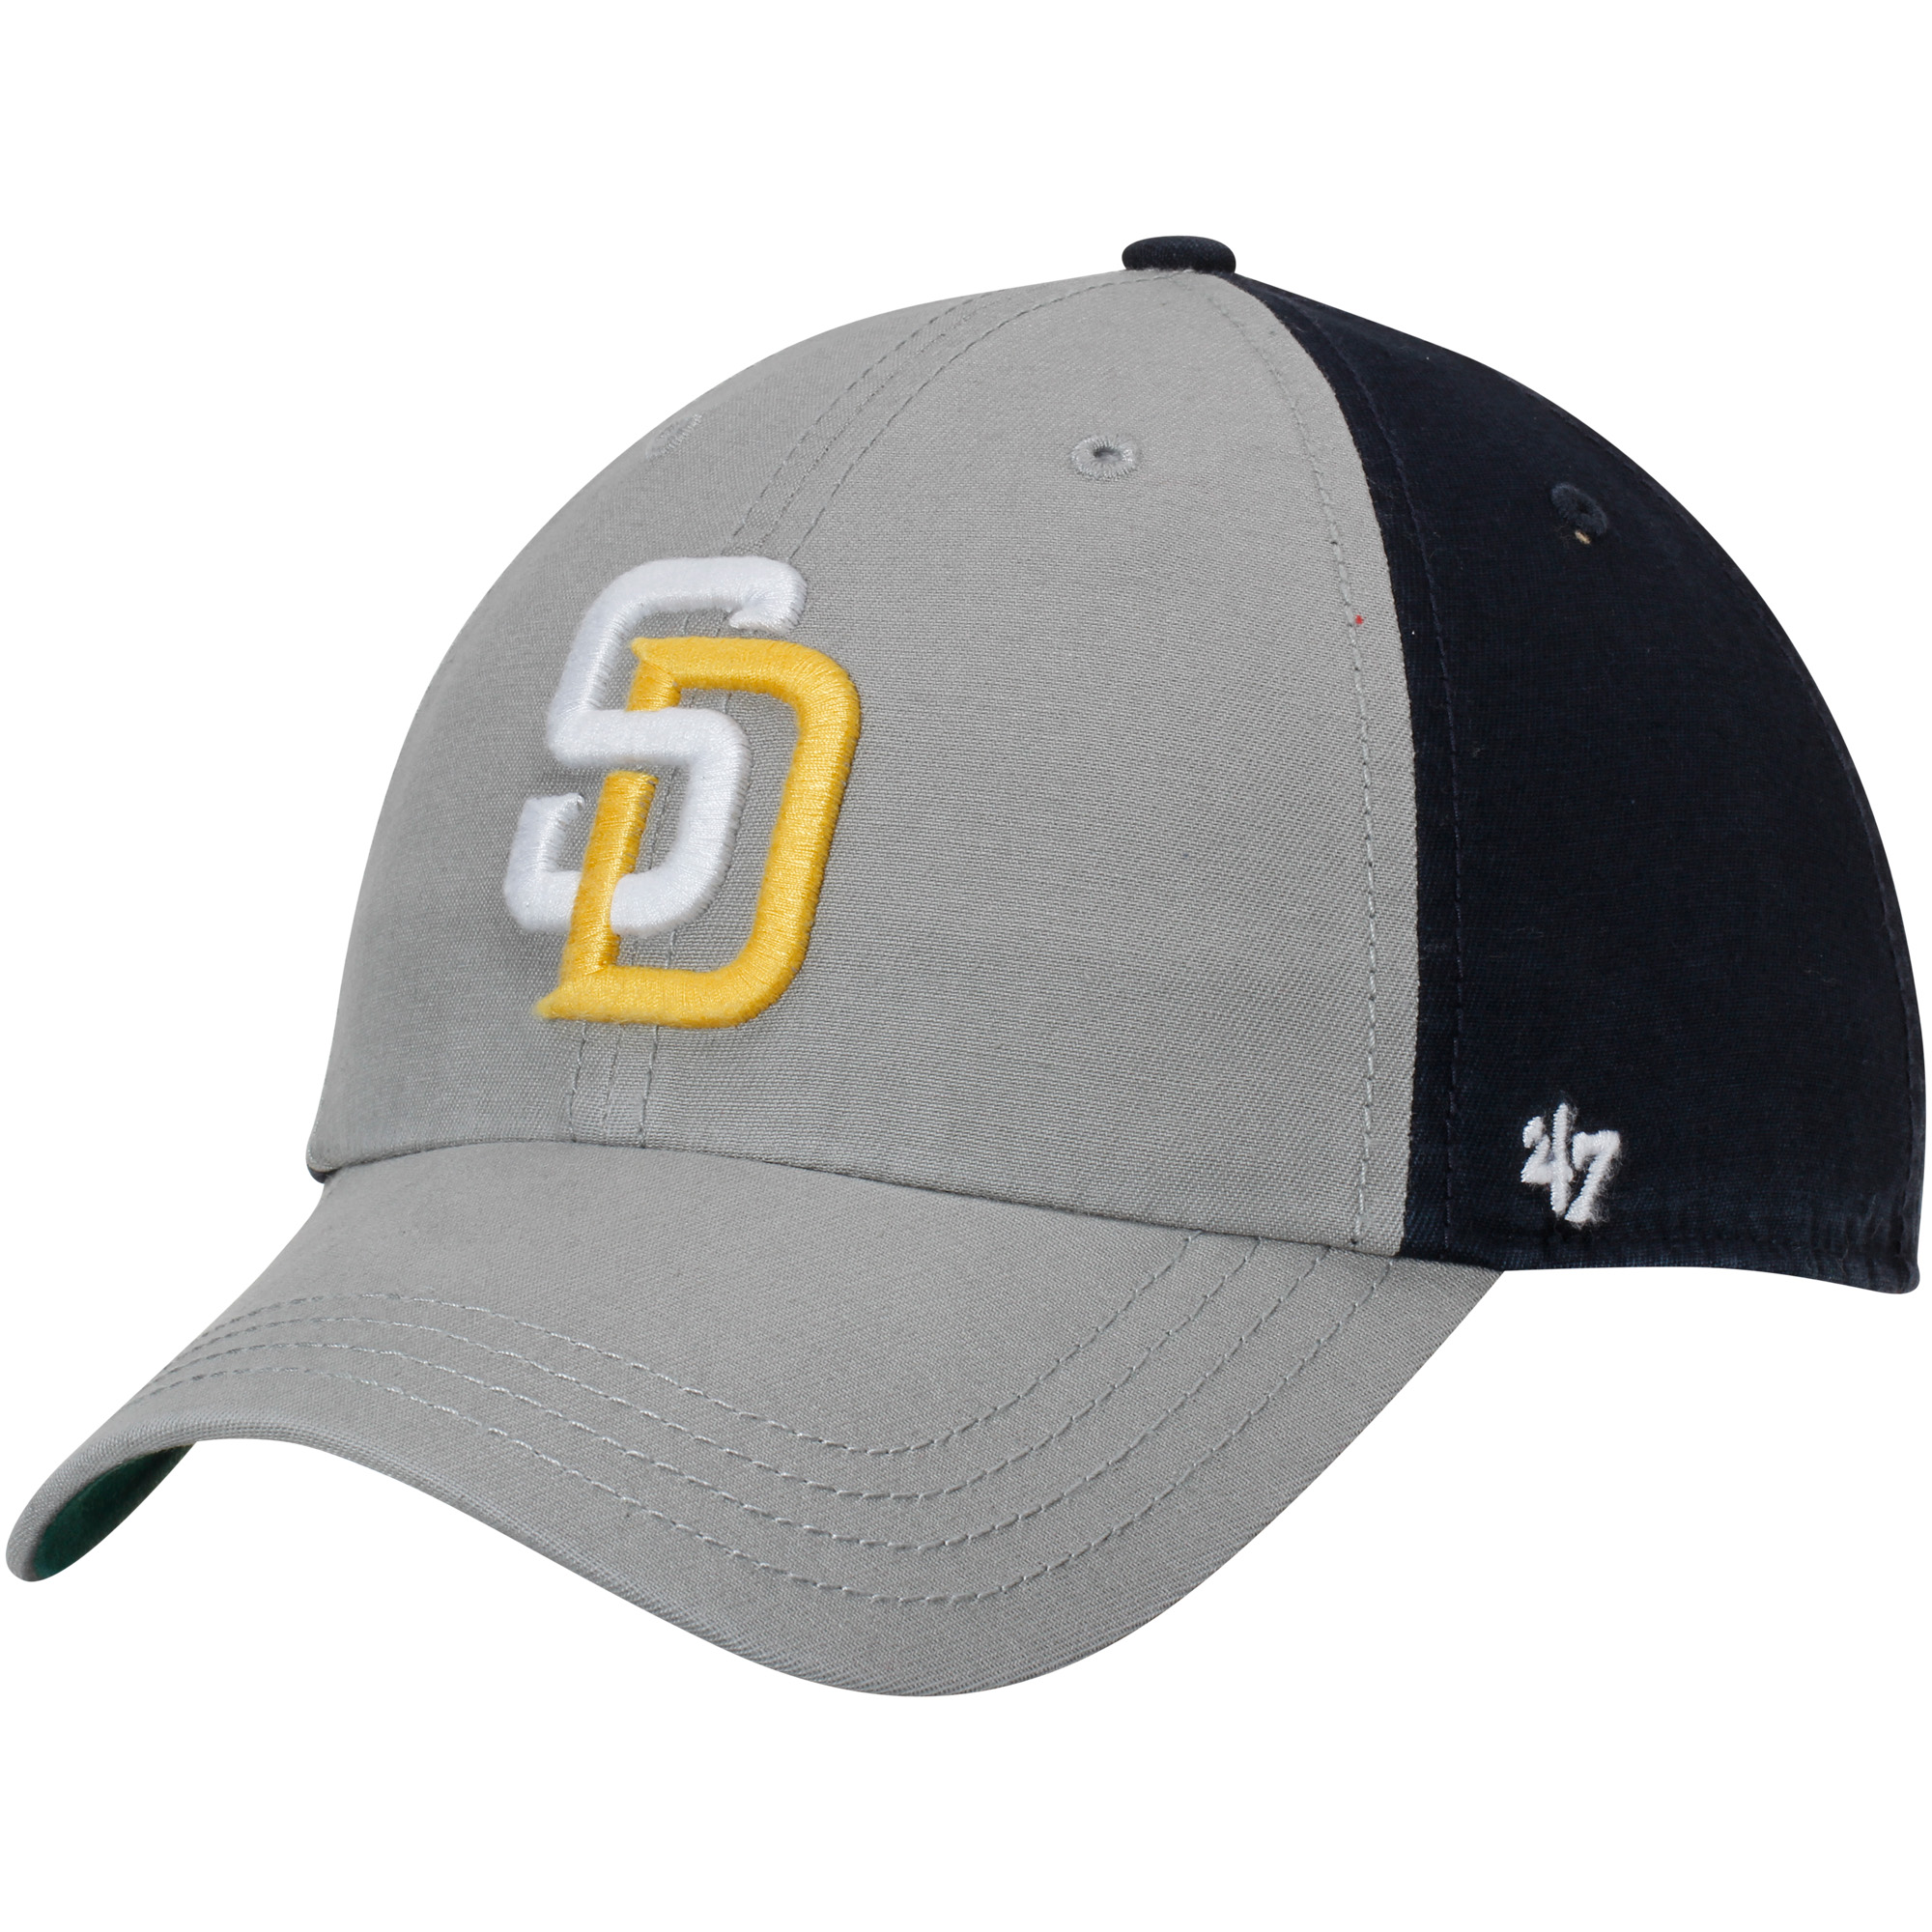 free shipping 138b8 f6155 ... switzerland san diego padres 47 flagstaff clean up adjustable hat gray  navy osfa d31c6 396c5